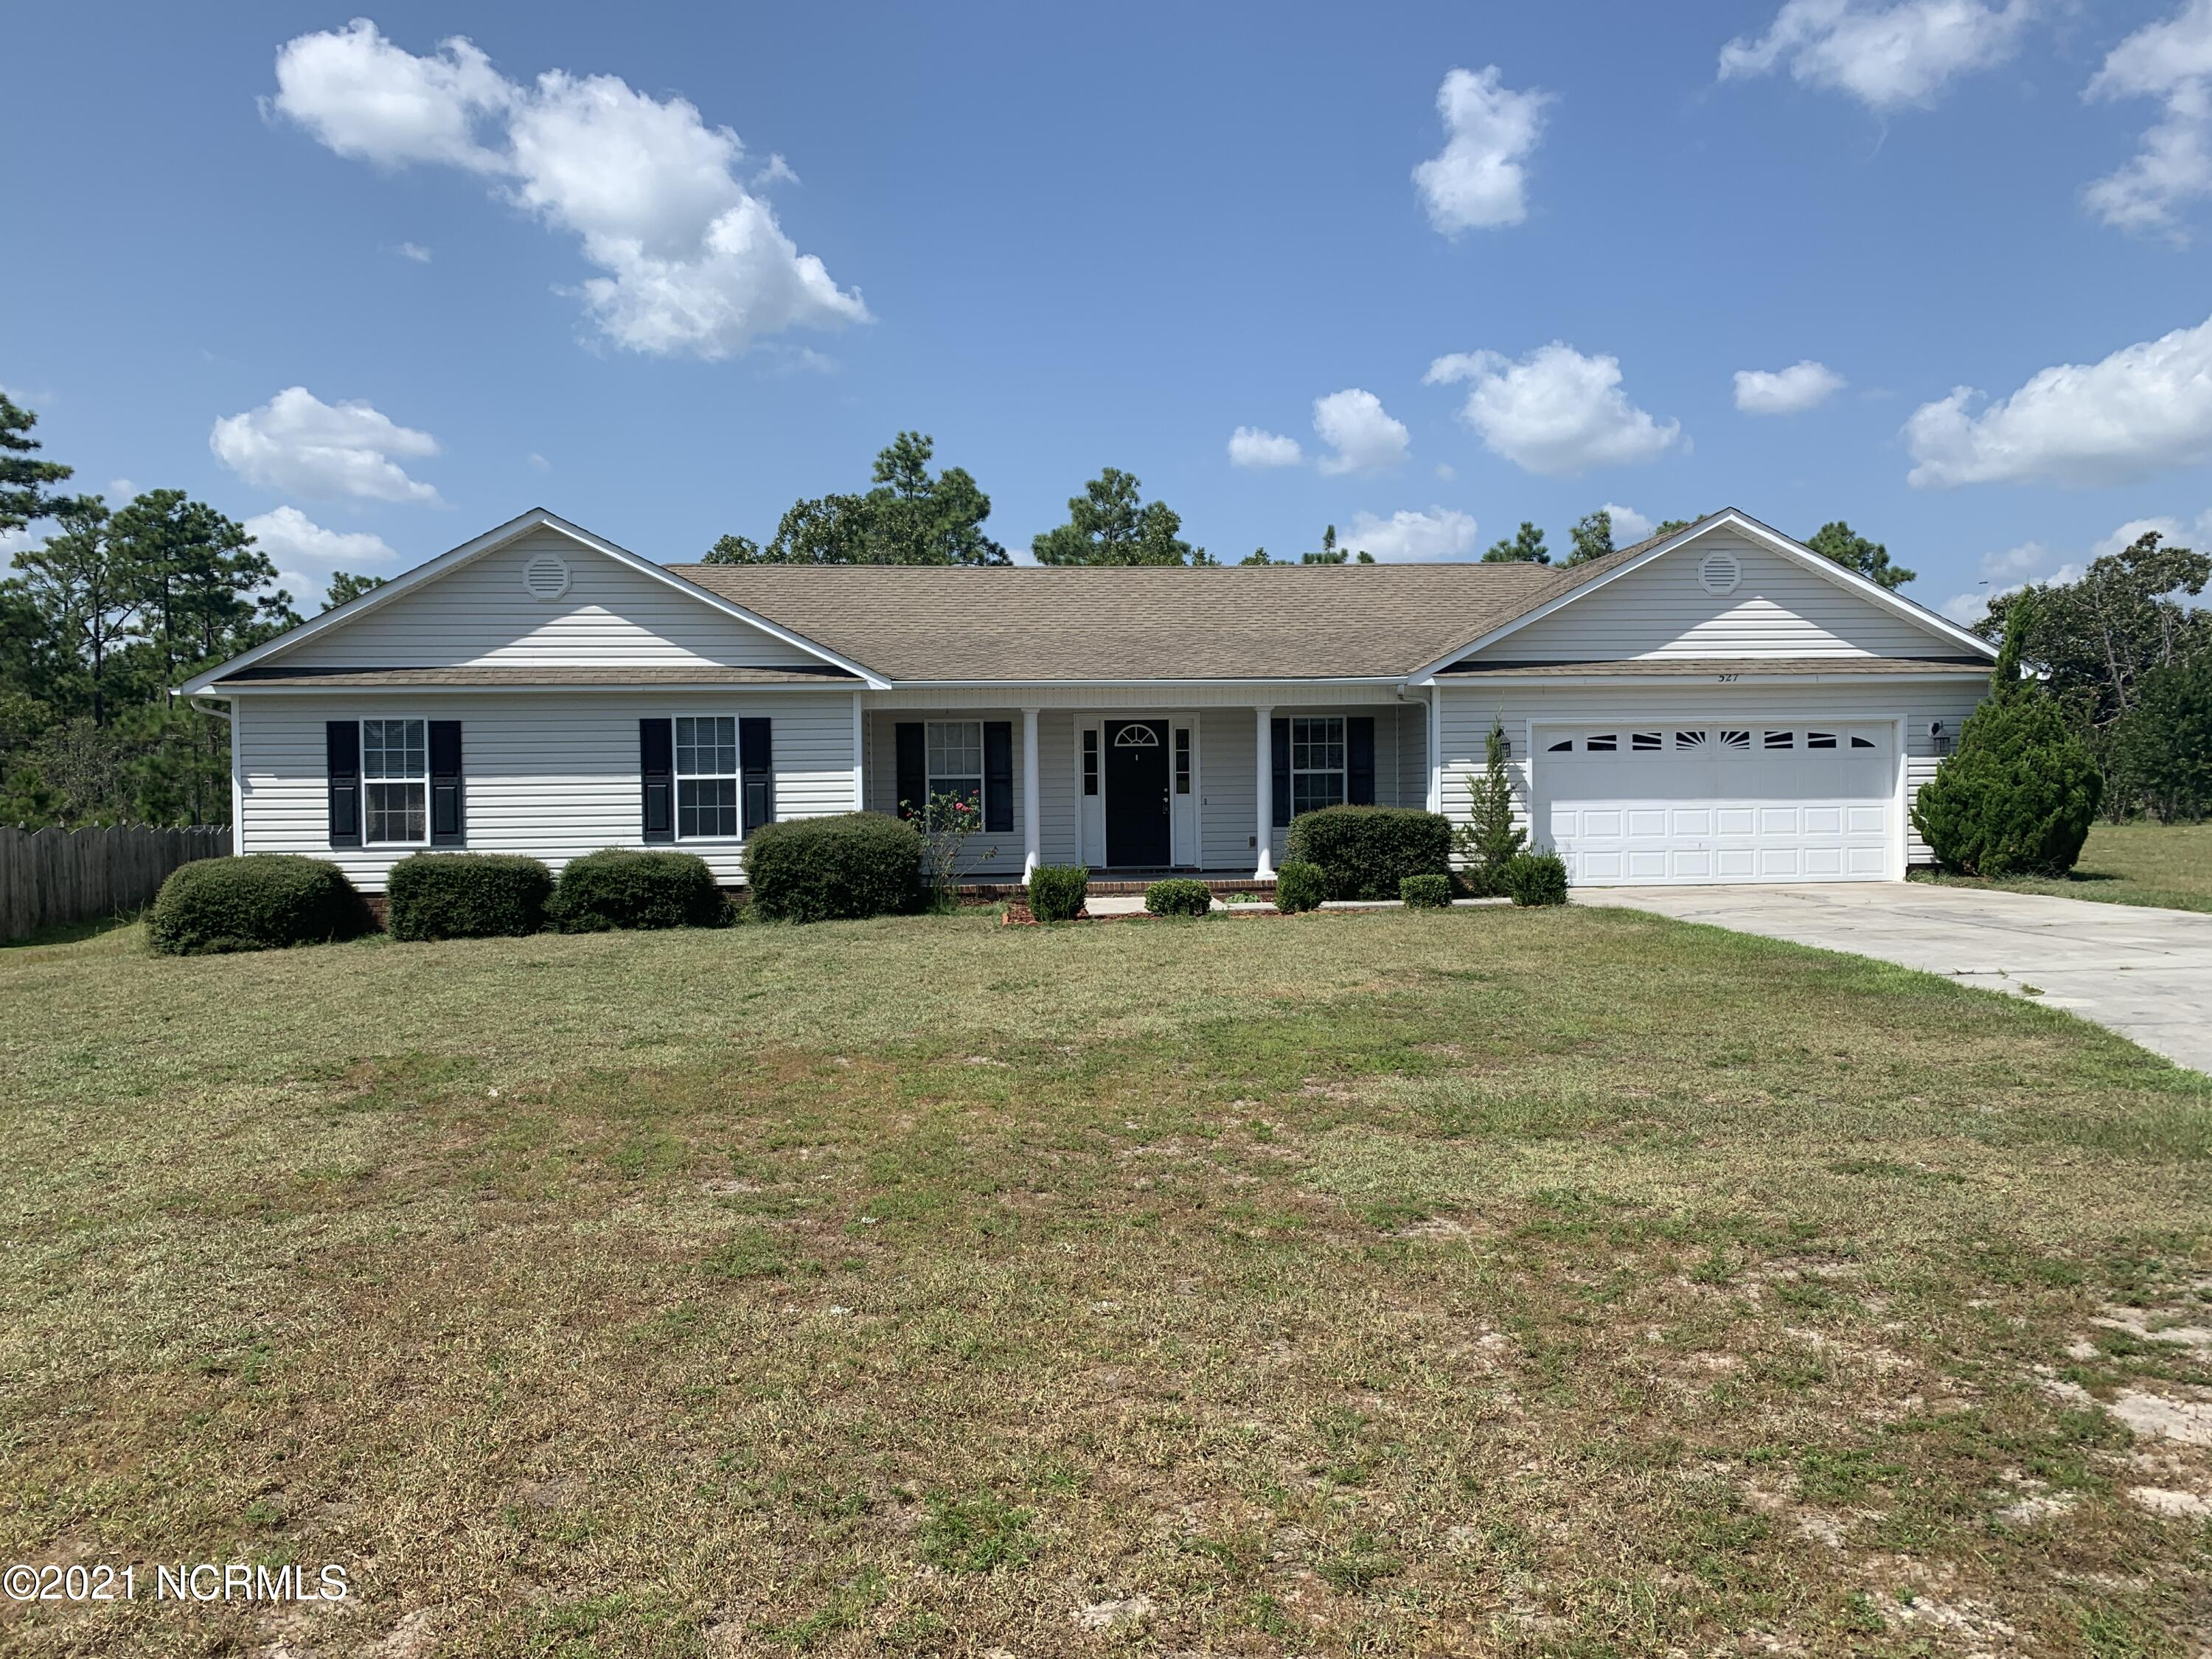 This fantastic 4BR, 3.5 BA single story home is perfect for any family large or small. Located at the end of a cul-de-sac in the family friendly neighborhood of Star Hill North in the highly desirable school district of Cape Carteret this home has everything inside and out. The large yard backs up to the Croatan Forest so it is quiet and inviting. The large two car garage and small fenced in area of the back yard allow for plenty of play toy storage. The floor plan is fantastic and allows for tons of room for everyone to spread out with just shy of 3000 Sq Ft. Every bedroom has a walk-in closet, and the master has two walk-in closets. Yes, the kitchen is very large with that open floor plan that we all love and granite counters. Lets not forget the two separate fireplaces and large separate living room that looks out into your private back yard. This home will not be on the market long. Come get it!